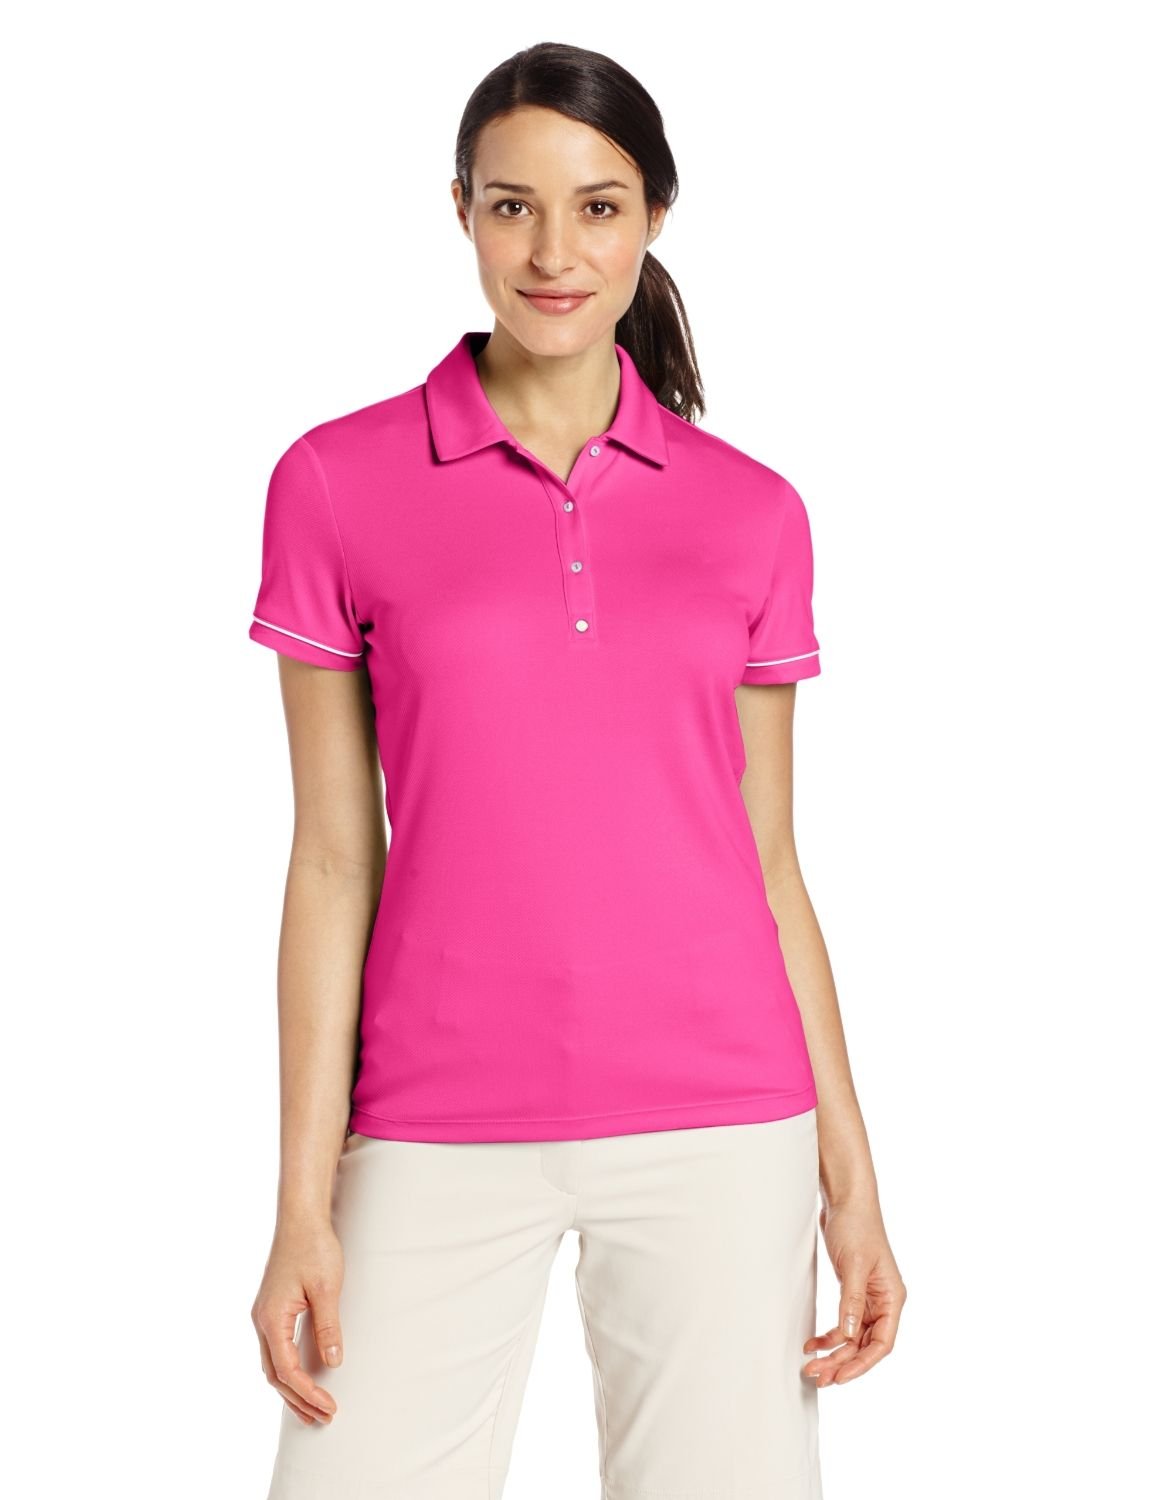 Packed with technology this womens NA tech golf polo shirt by Puma will  help you flourish on the golf course a9cea4cfc8